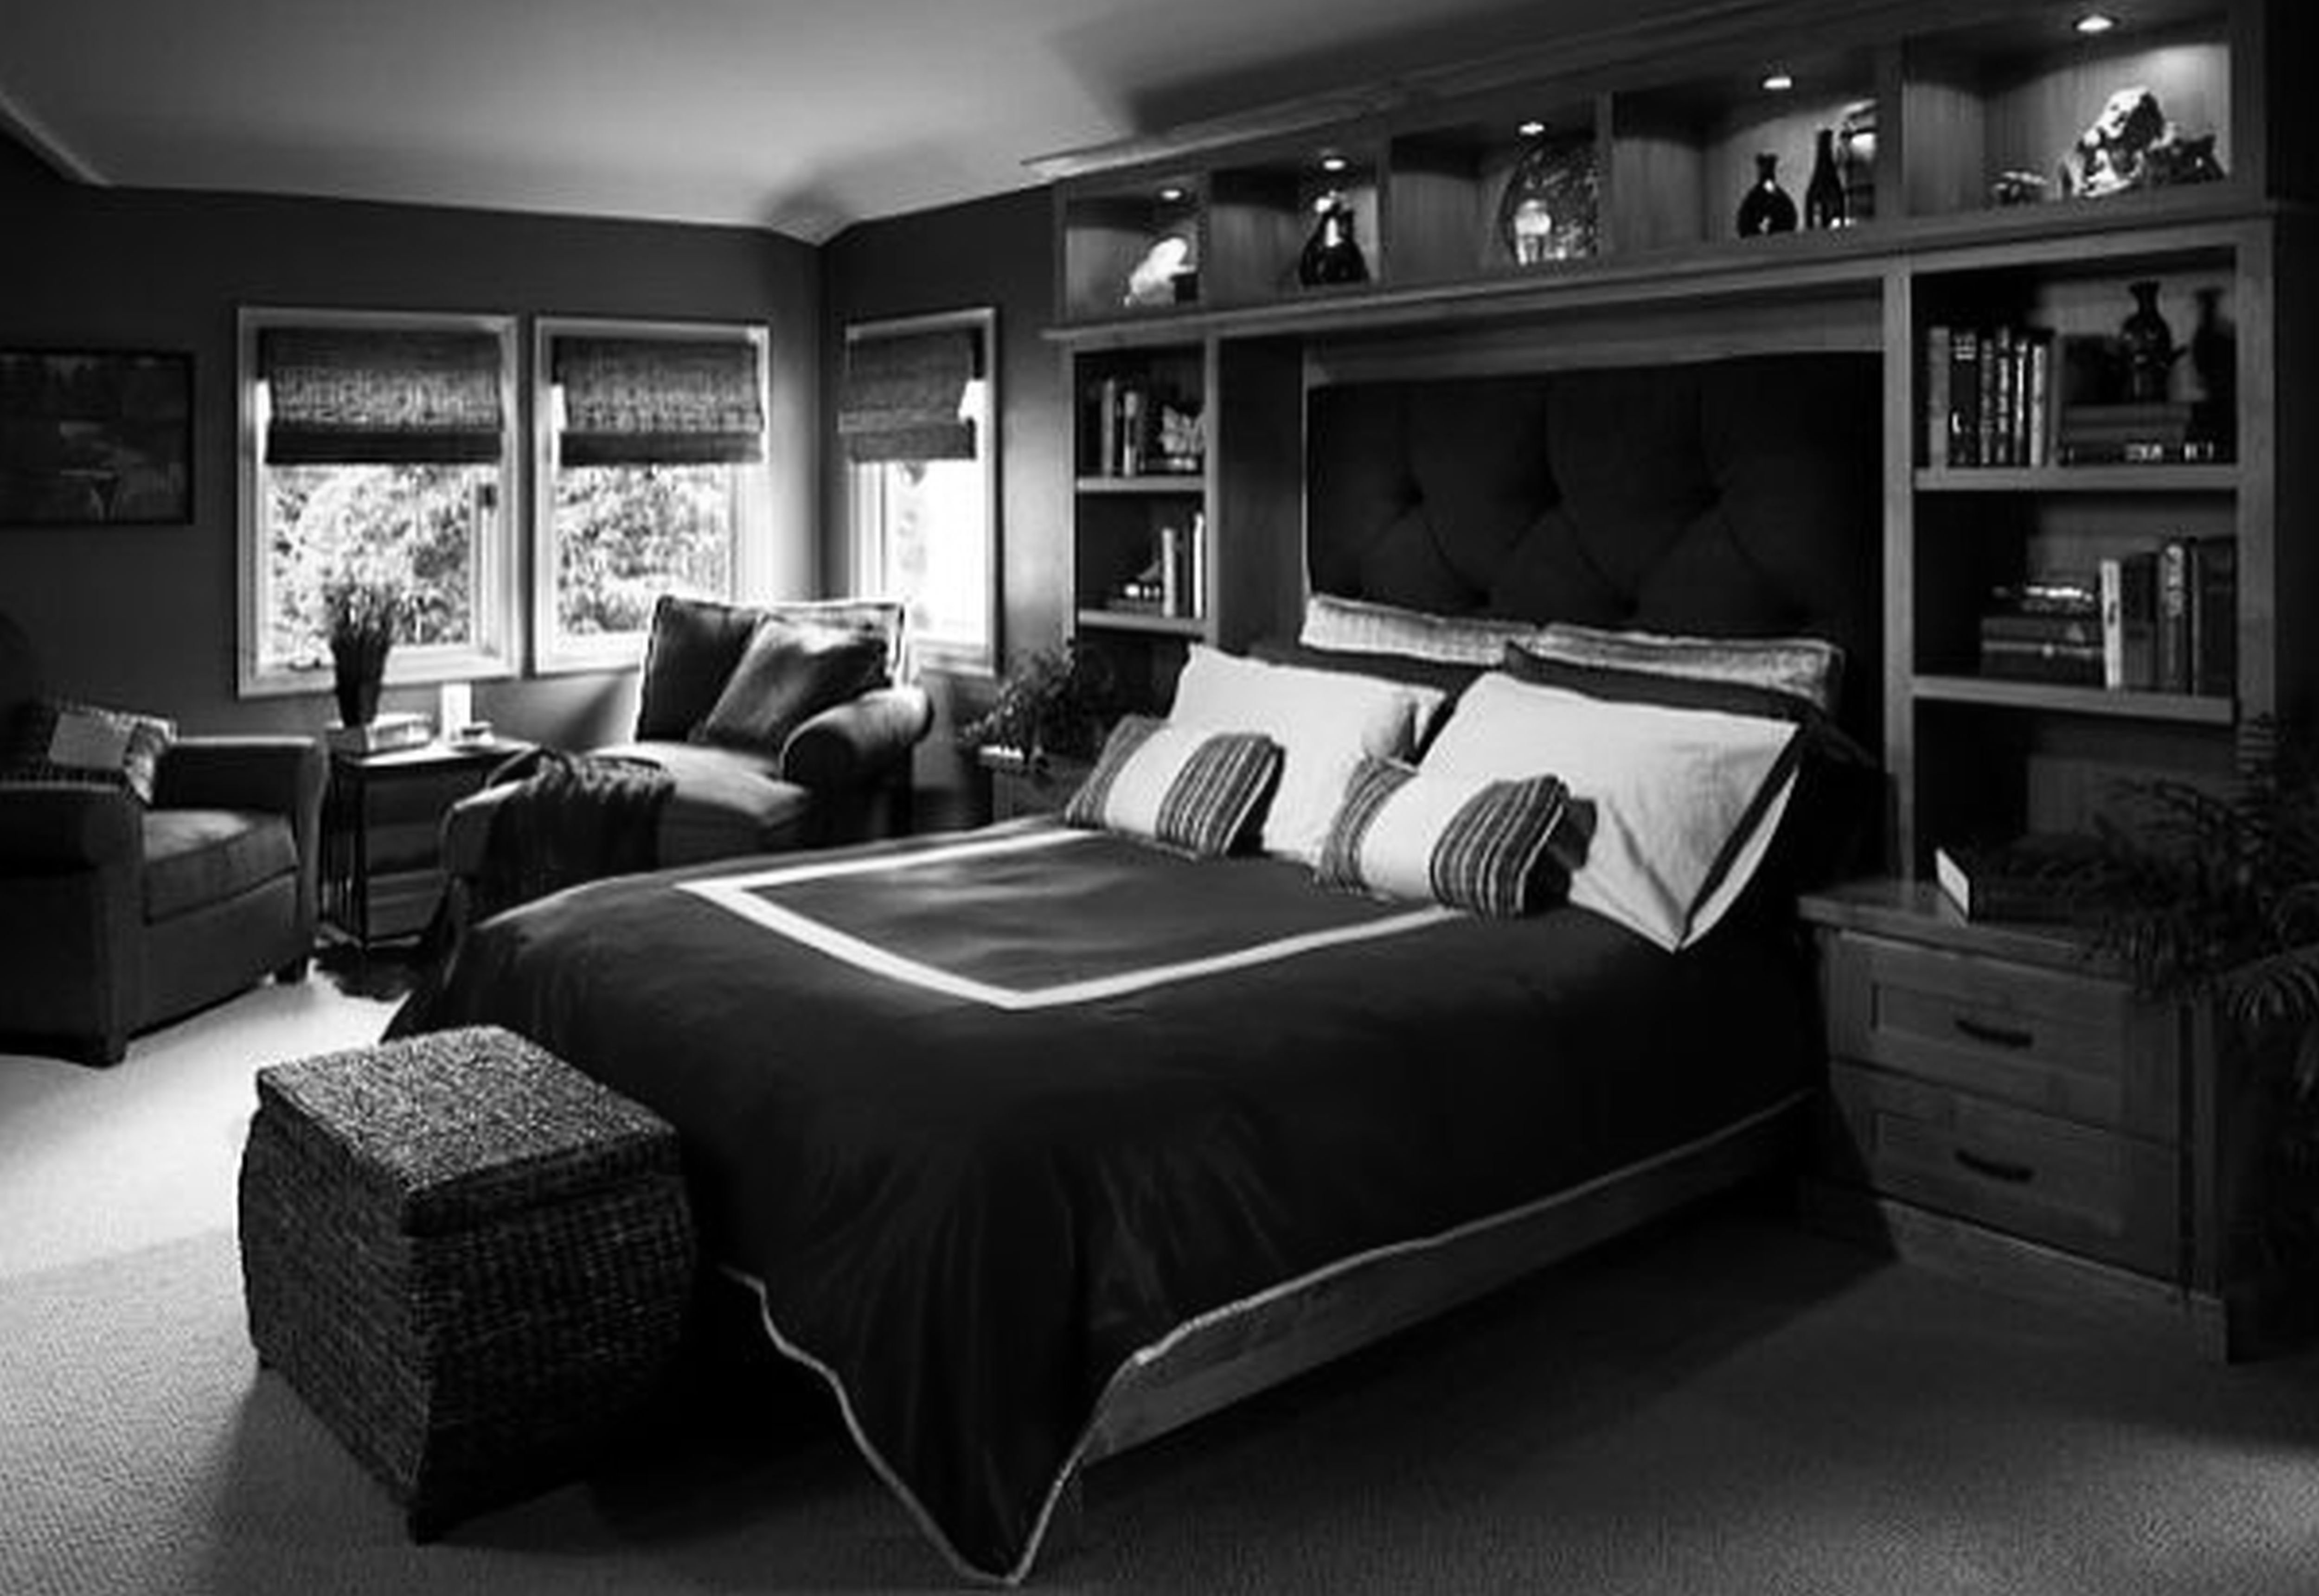 10 Spectacular Cool Room Ideas For Guys bedroom cool teenage bedroom ideas guys bedroom ideas for guys 2020